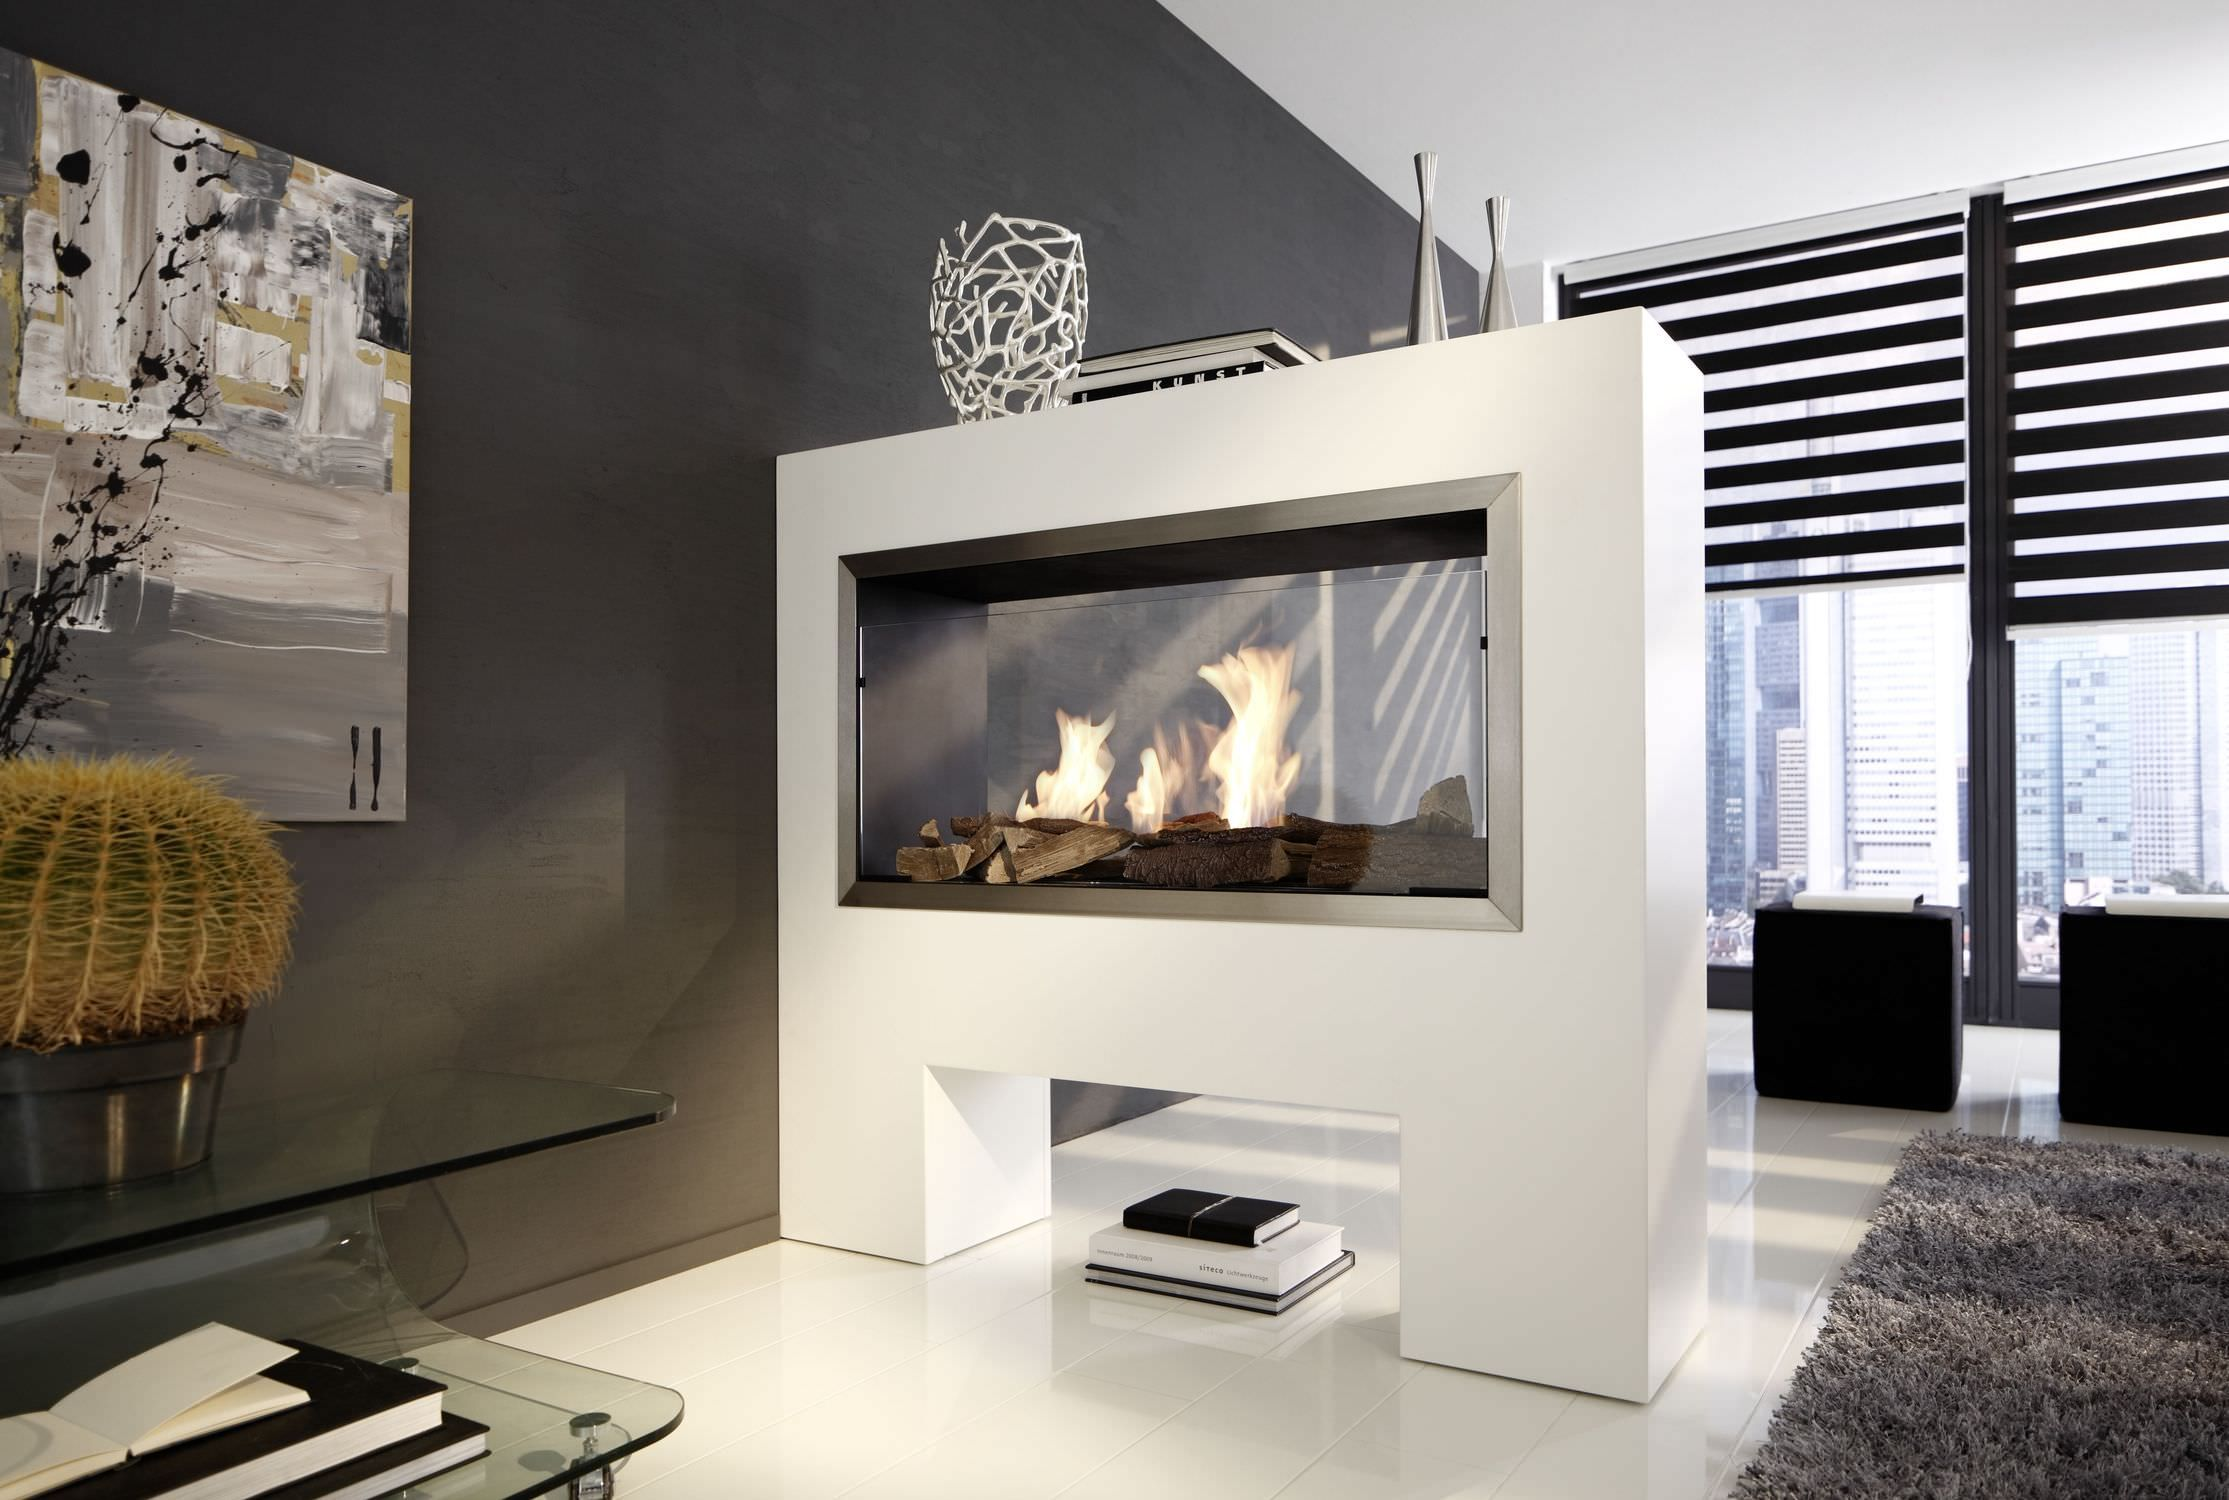 2 Sided Electric Fireplace Insert Fireplace Pinterest  # Foyer Electric